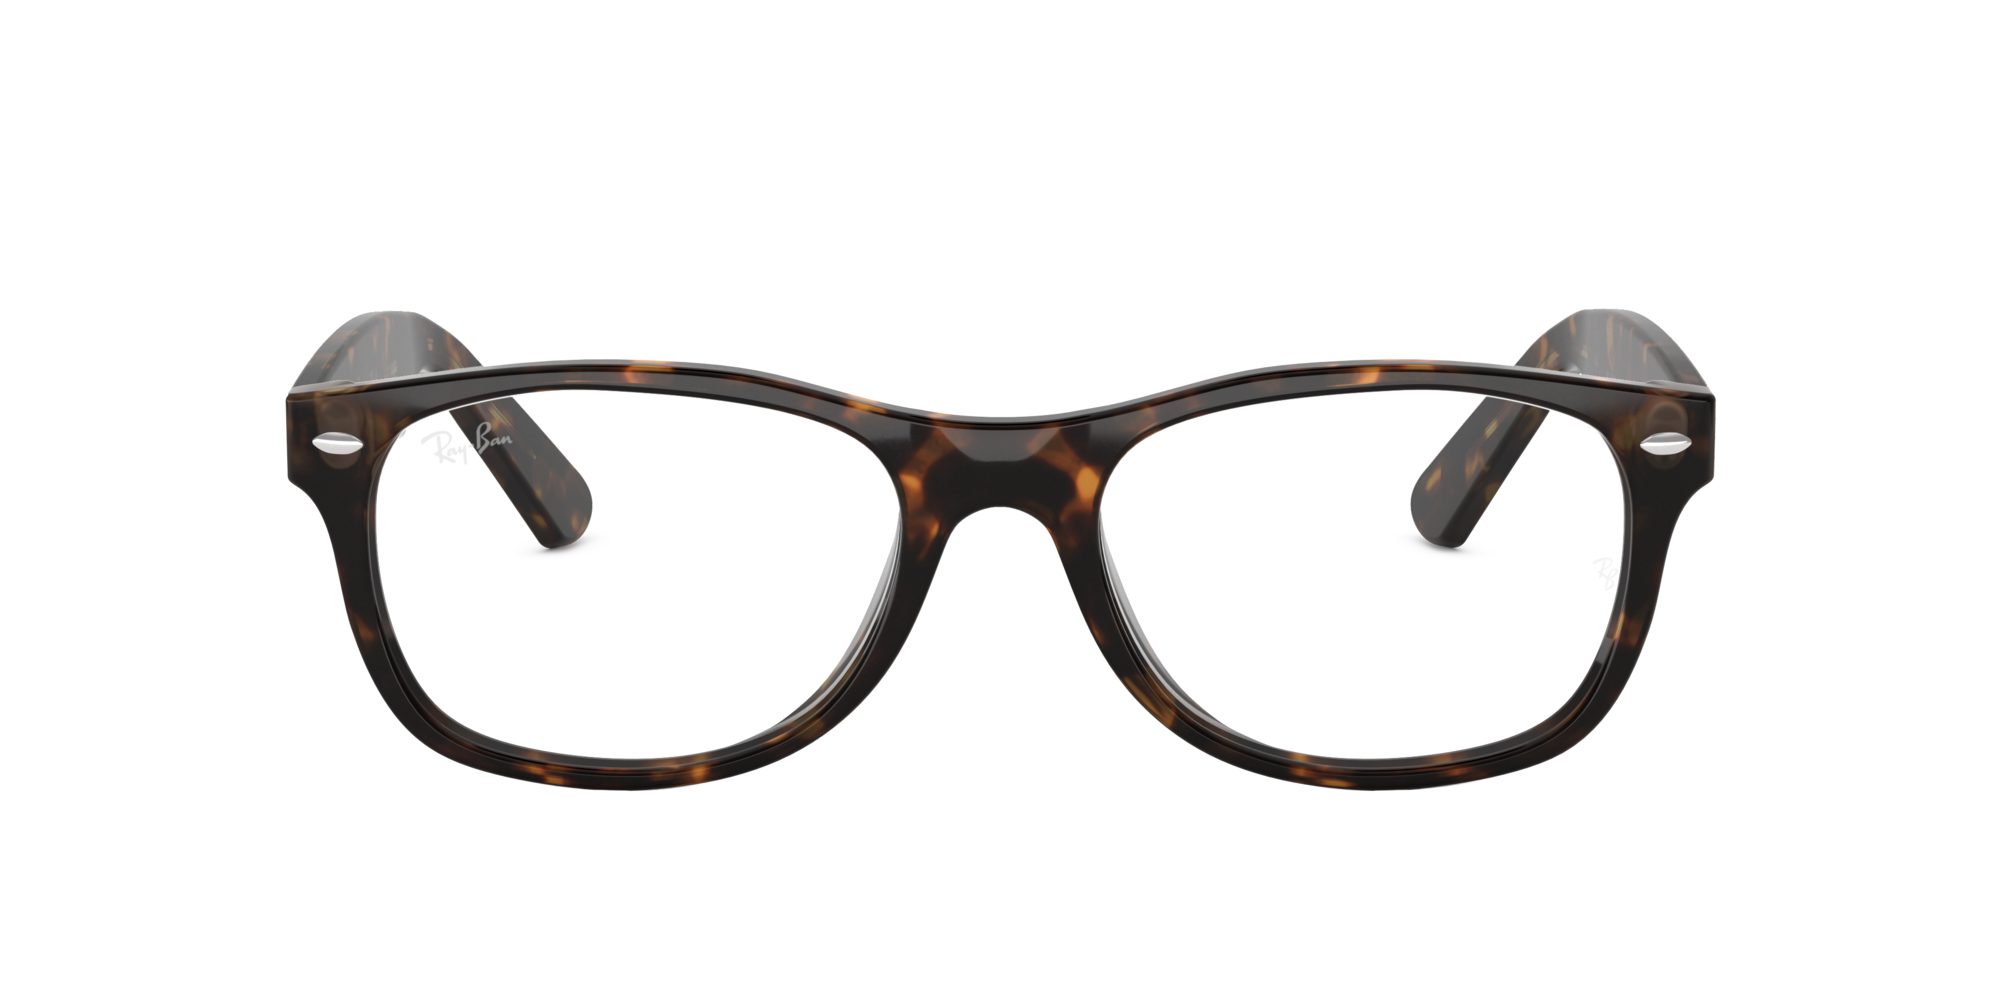 Image for RX5184 NEW WAYFARER from LensCrafters | Glasses, Prescription Glasses Online, Eyewear